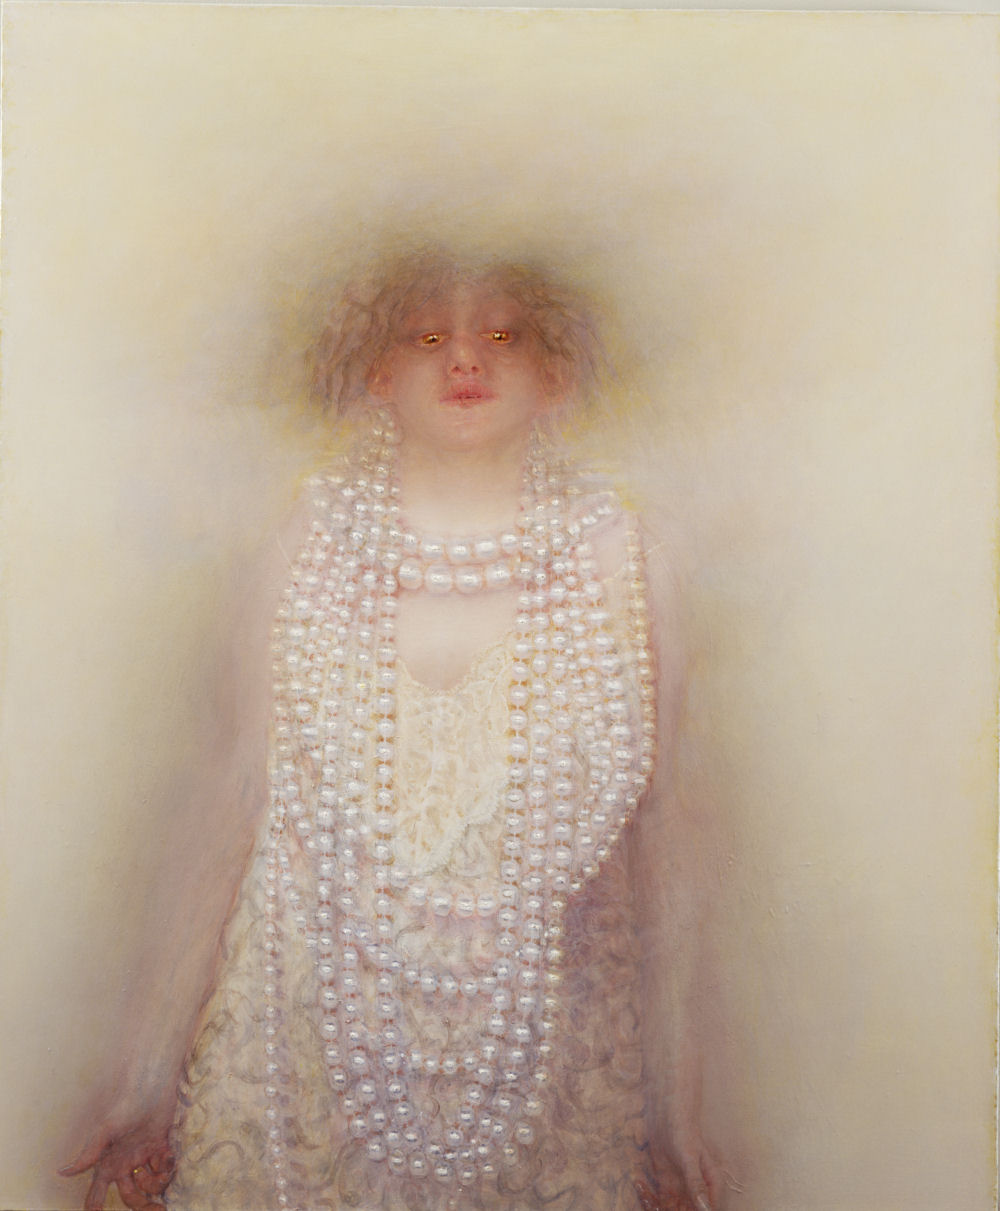 Anne Harris, Portrait (Pearls), oil on canvas, 36 x 30 inches, 1999-2001 (courte